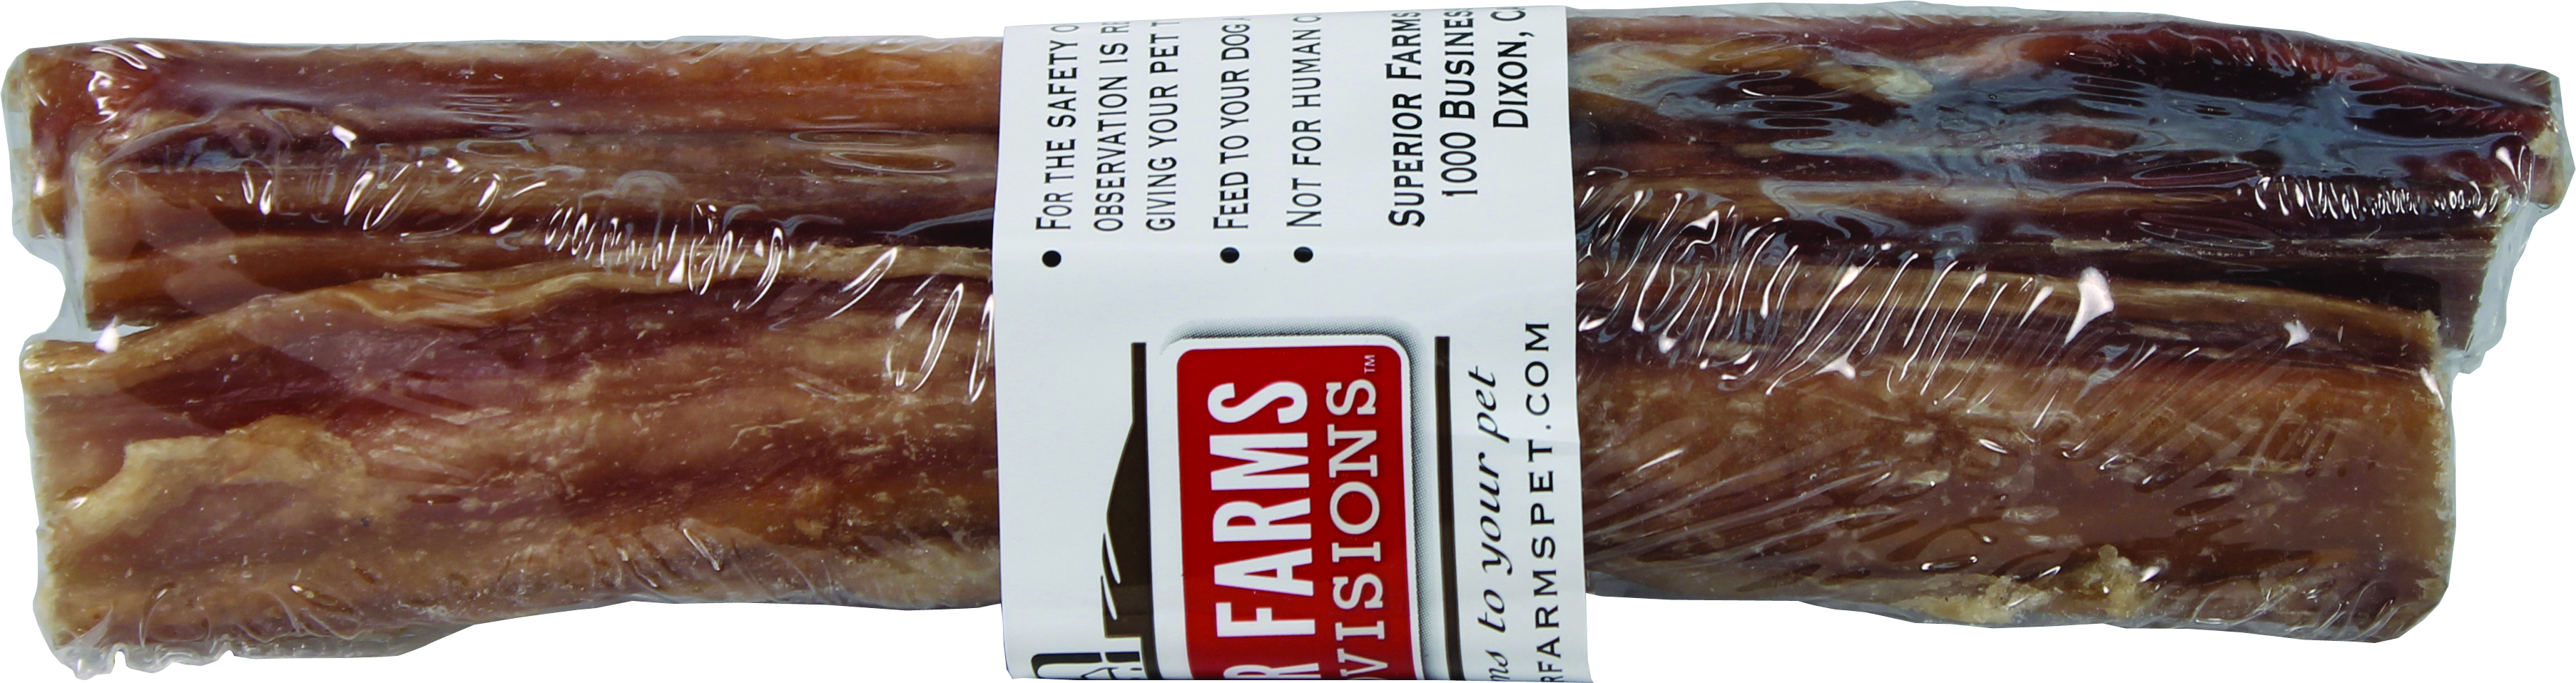 Superior Farms Pet Provisions USA Beef Pizzle Straight Dog Treat